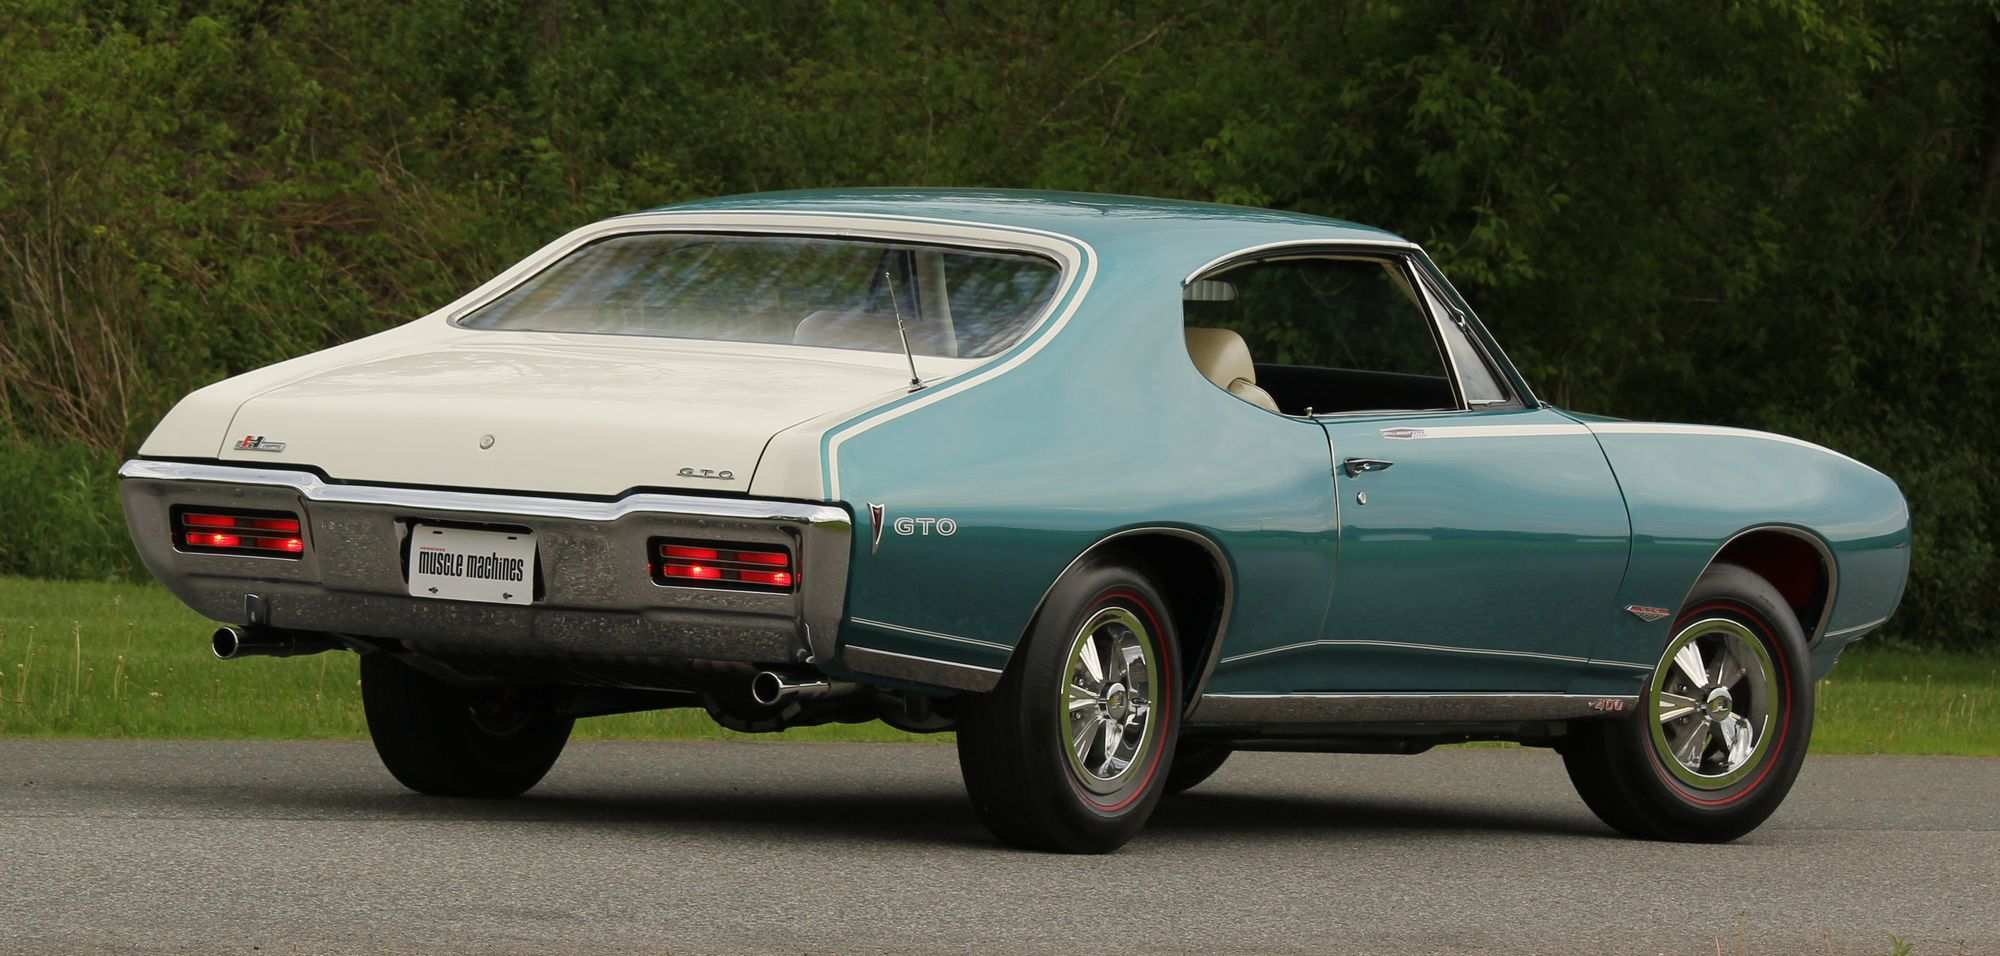 44 Gallery of 2019 Pontiac Gto Price for 2019 Pontiac Gto